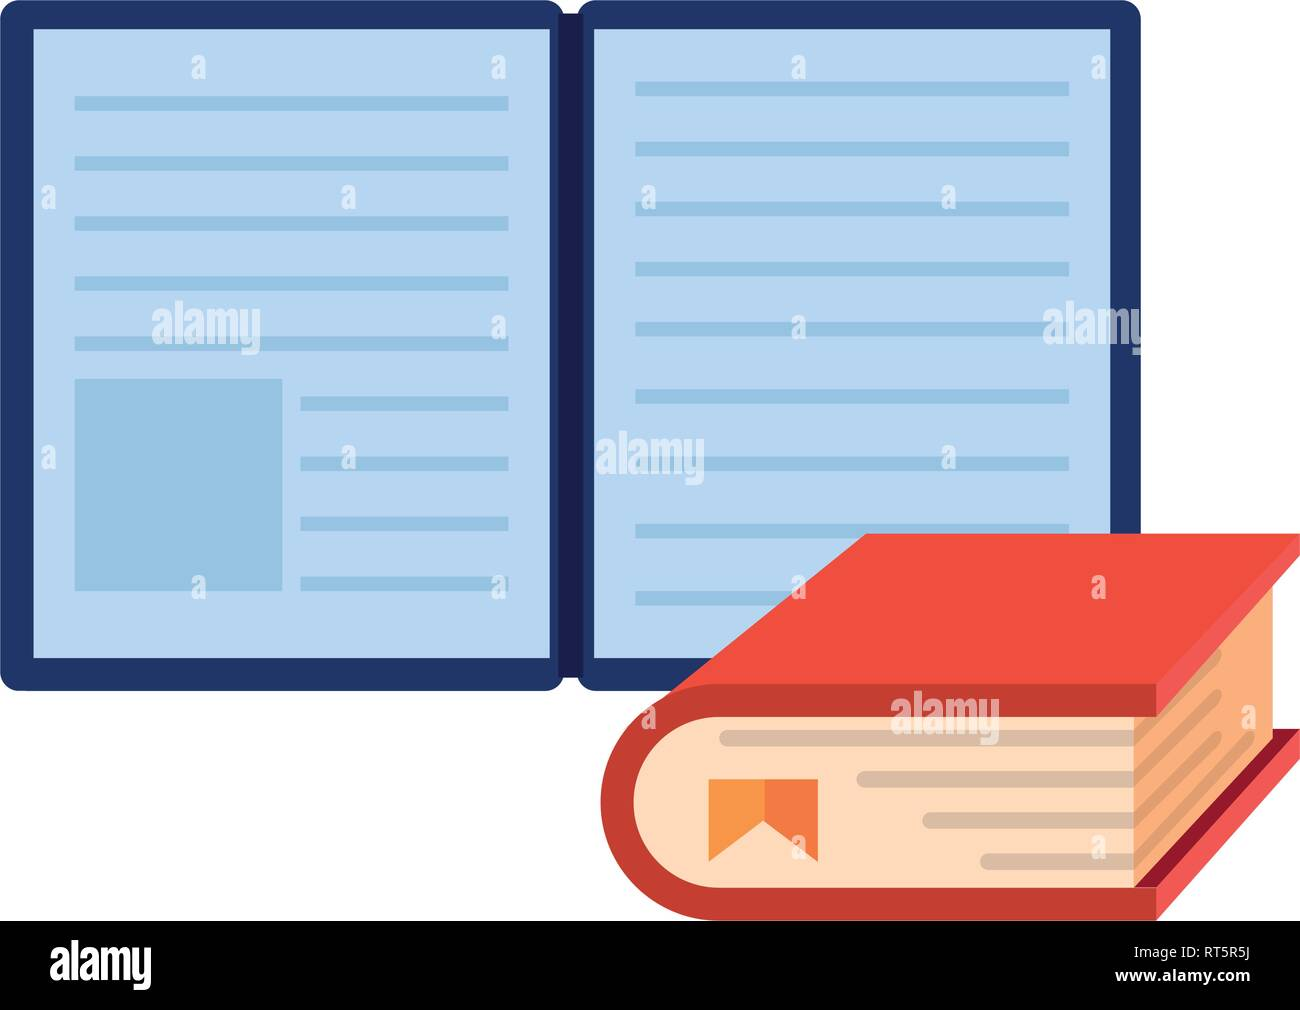 ebook book learning online education school vector illustration - Stock Image